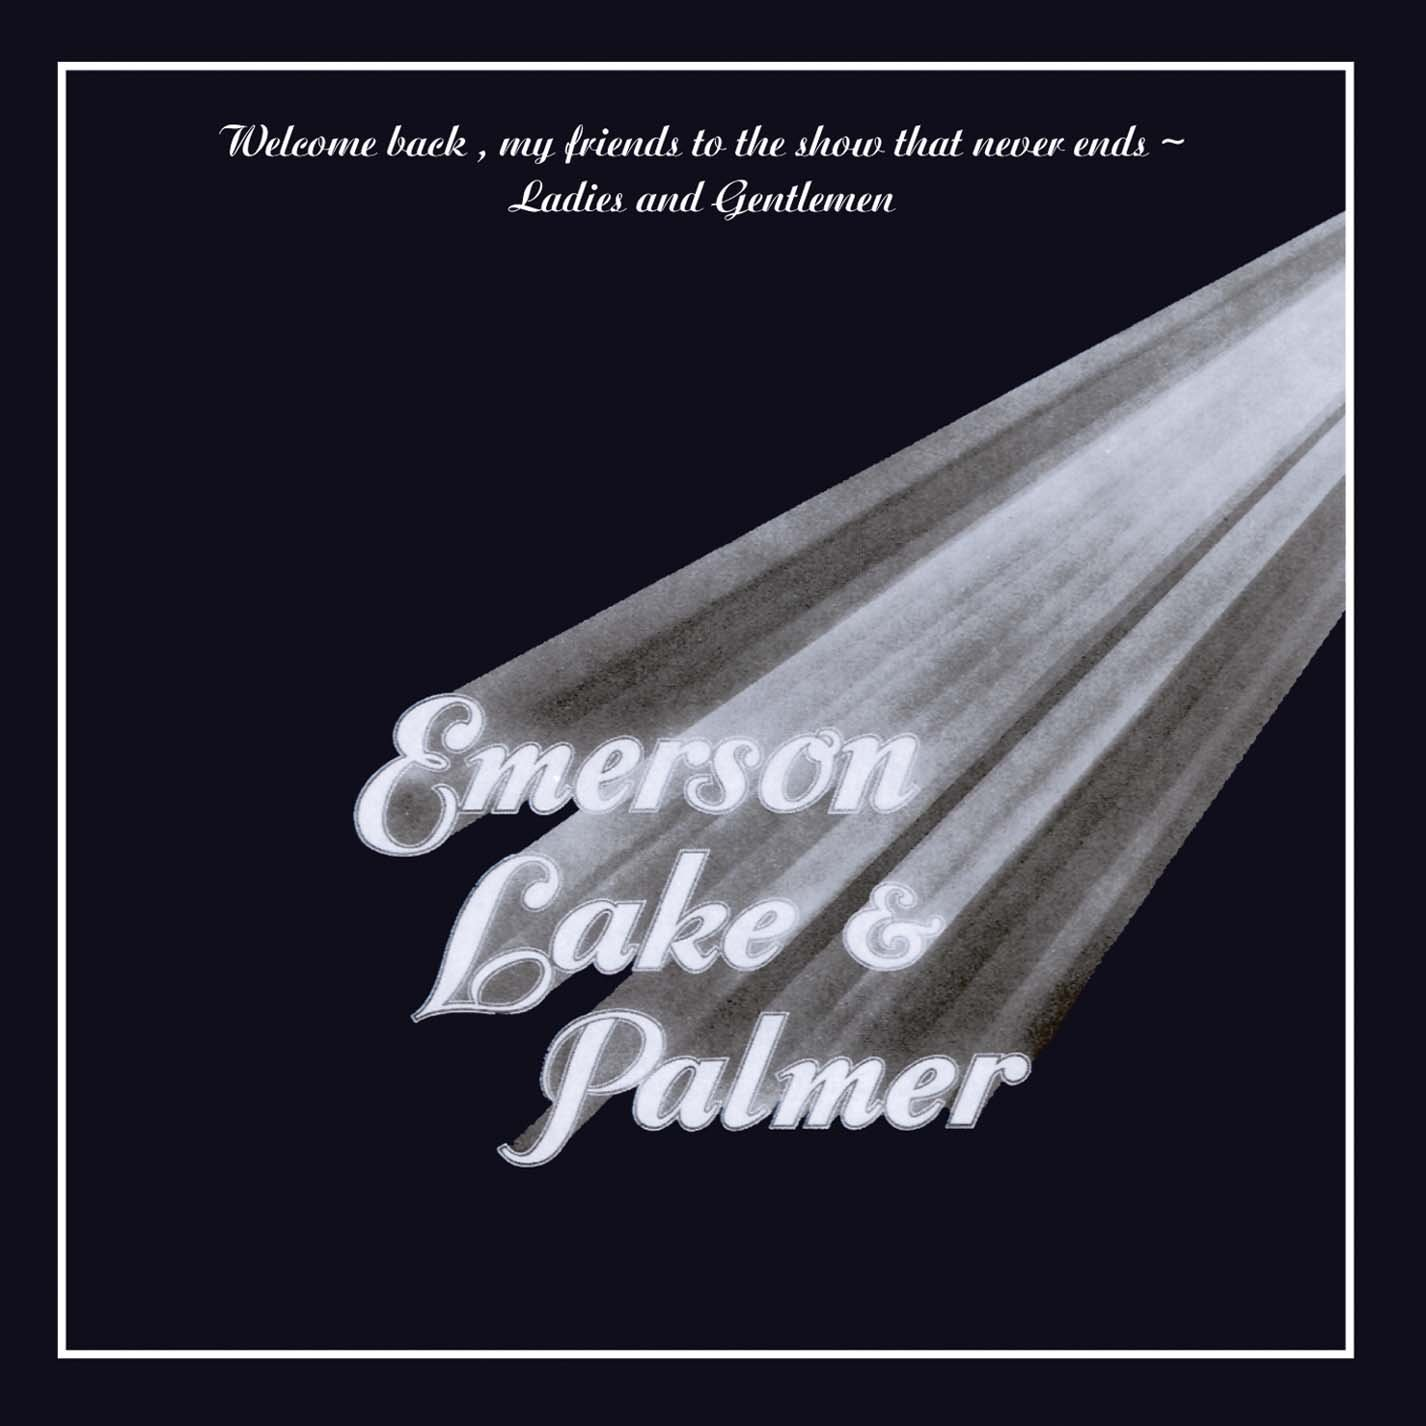 Vinilo : Emerson, Lake & Palmer - Welcome Back My Friends To The Show That Never End - Ladies and gentlemen (3 Disc)